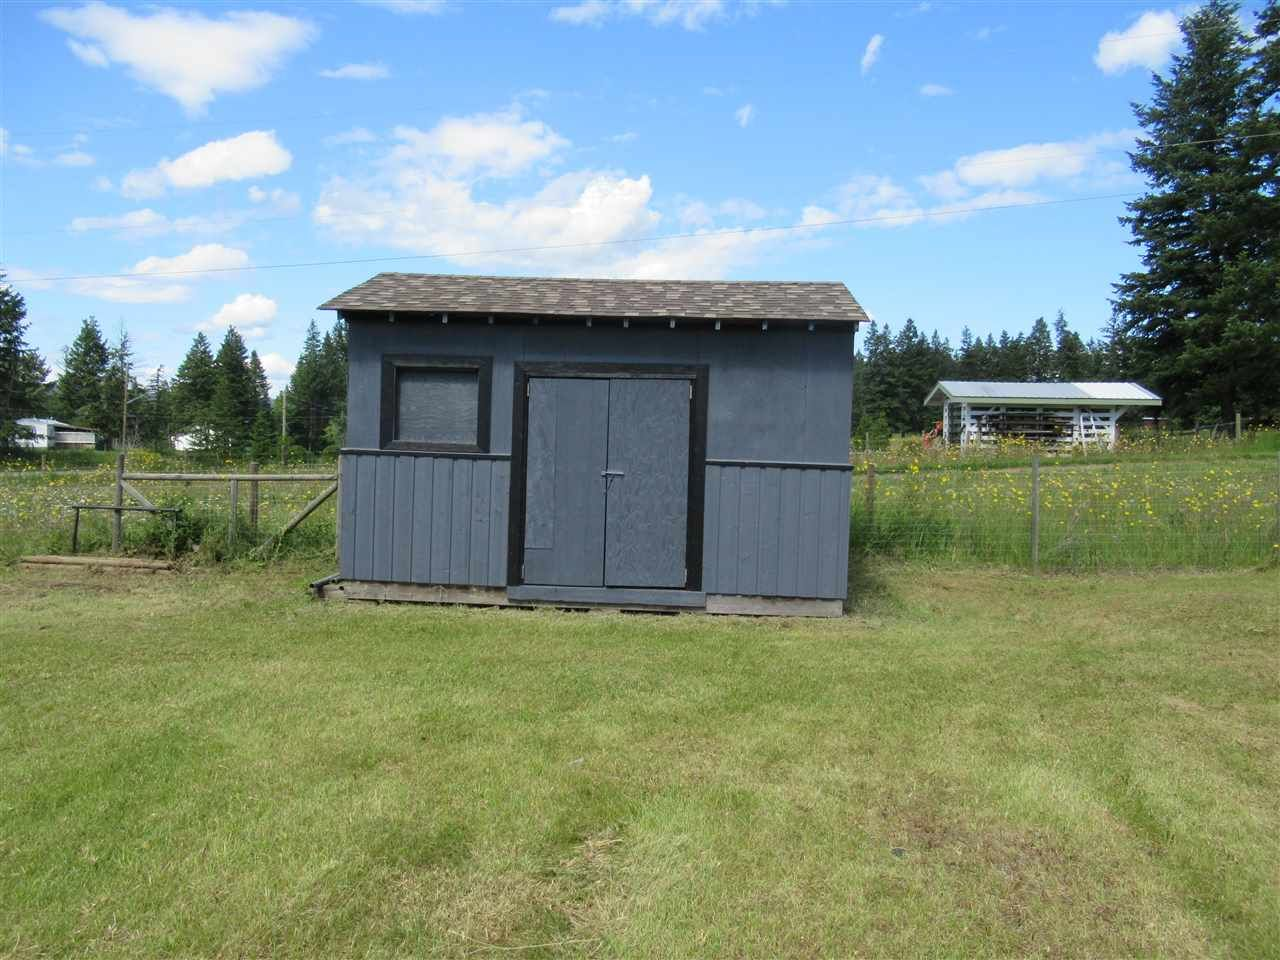 Photo 27: Photos: 3257 HINSCHE Road in Williams Lake: Williams Lake - Rural East House for sale (Williams Lake (Zone 27))  : MLS®# R2477340